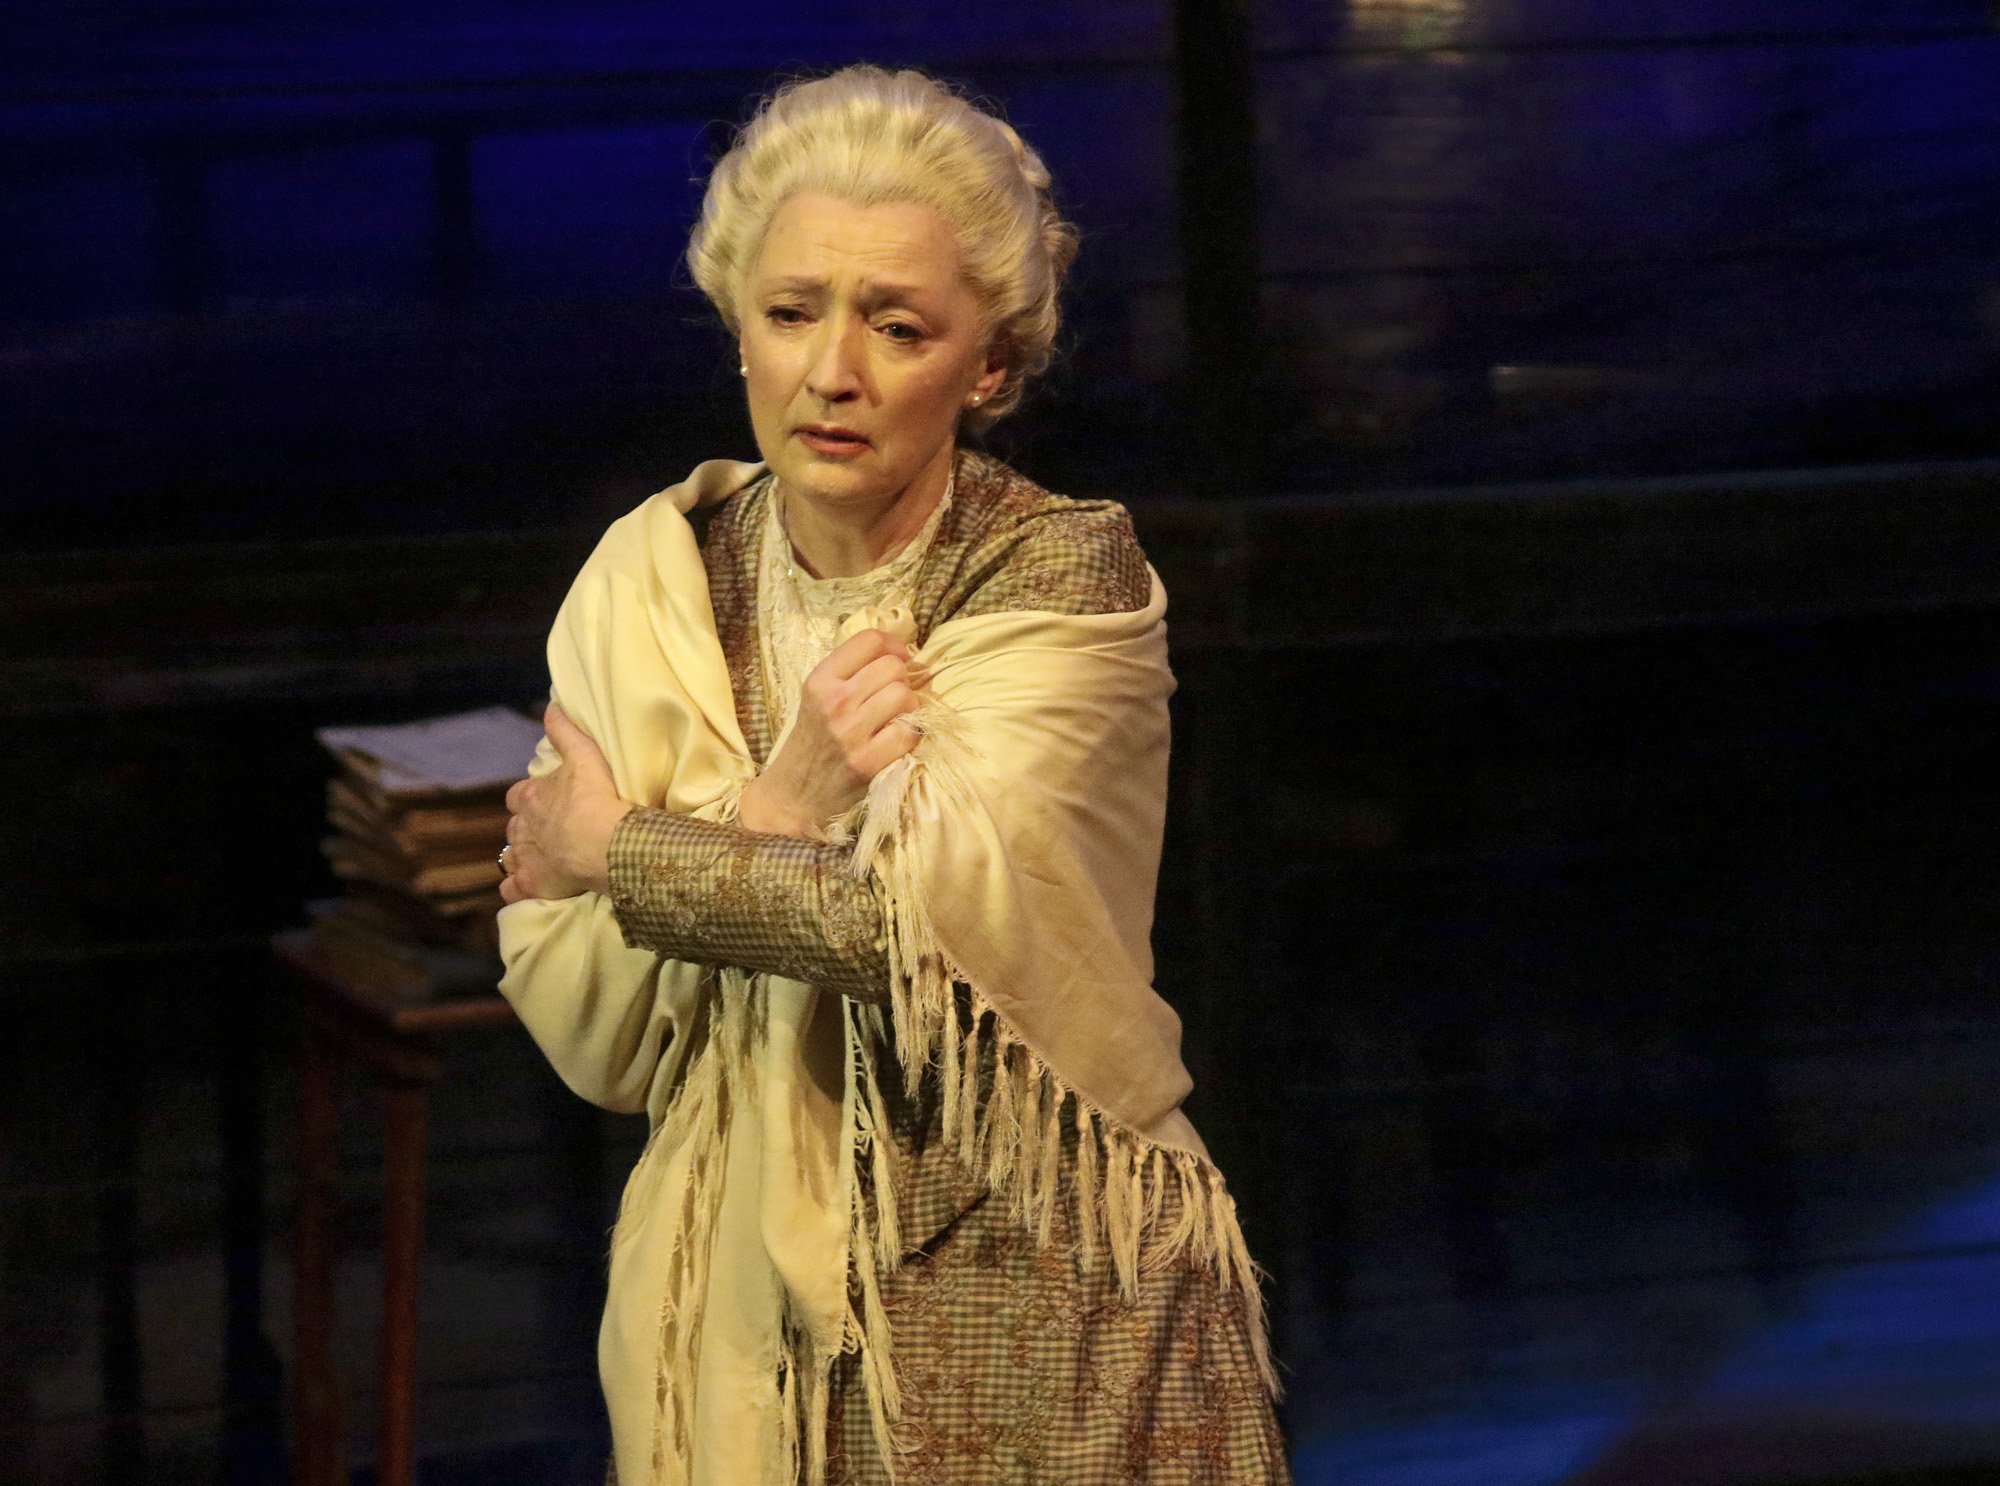 Lesley Manville (Mary Tyrone). PHOTO CREDIT: Lawrence K. Ho